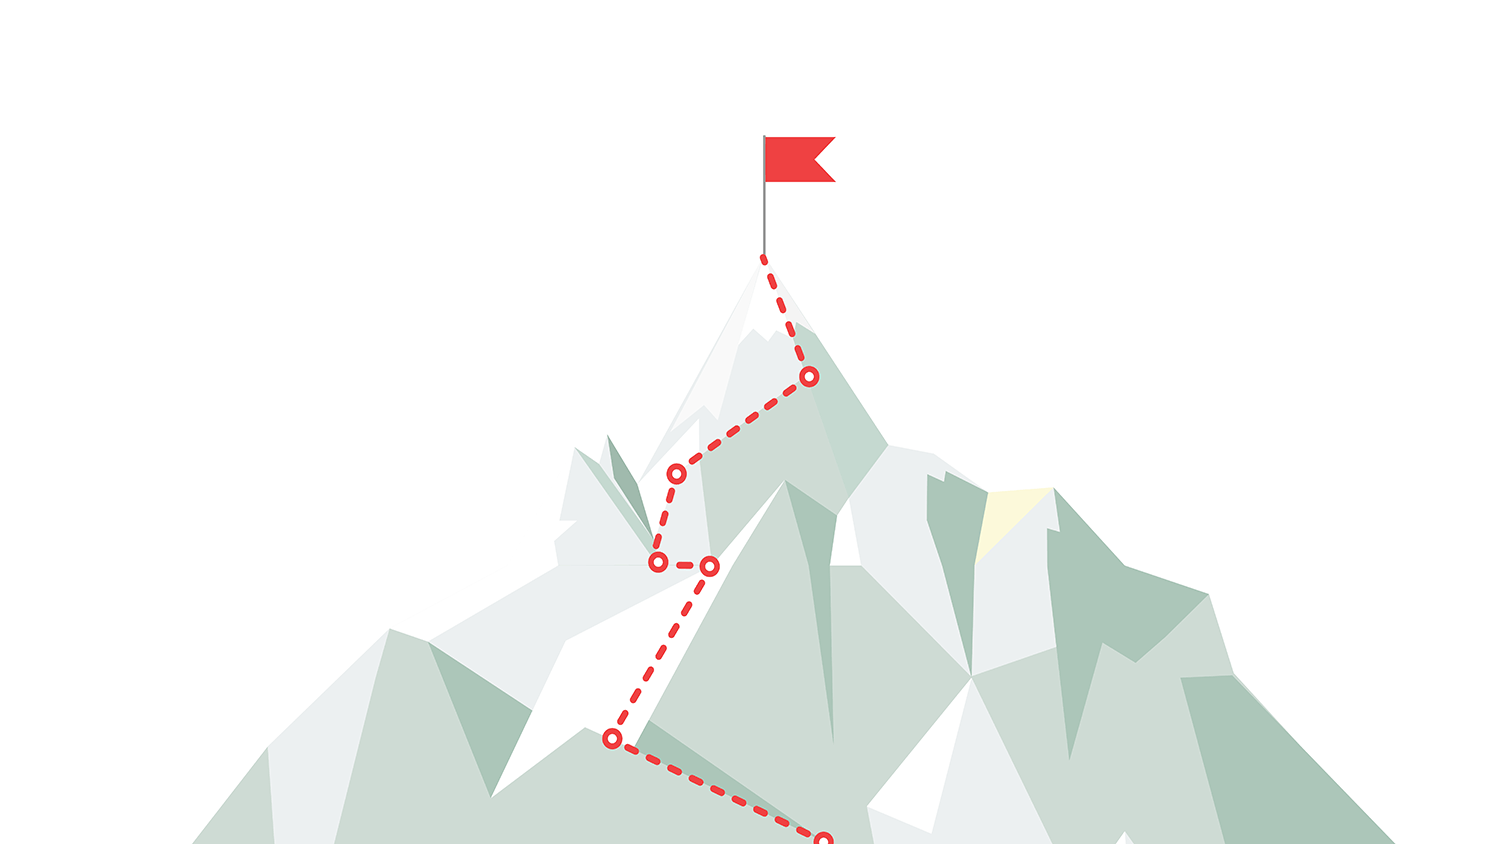 A cartoon graphic of a mountain and a dotted line traces a route to the top where a red flag sits.